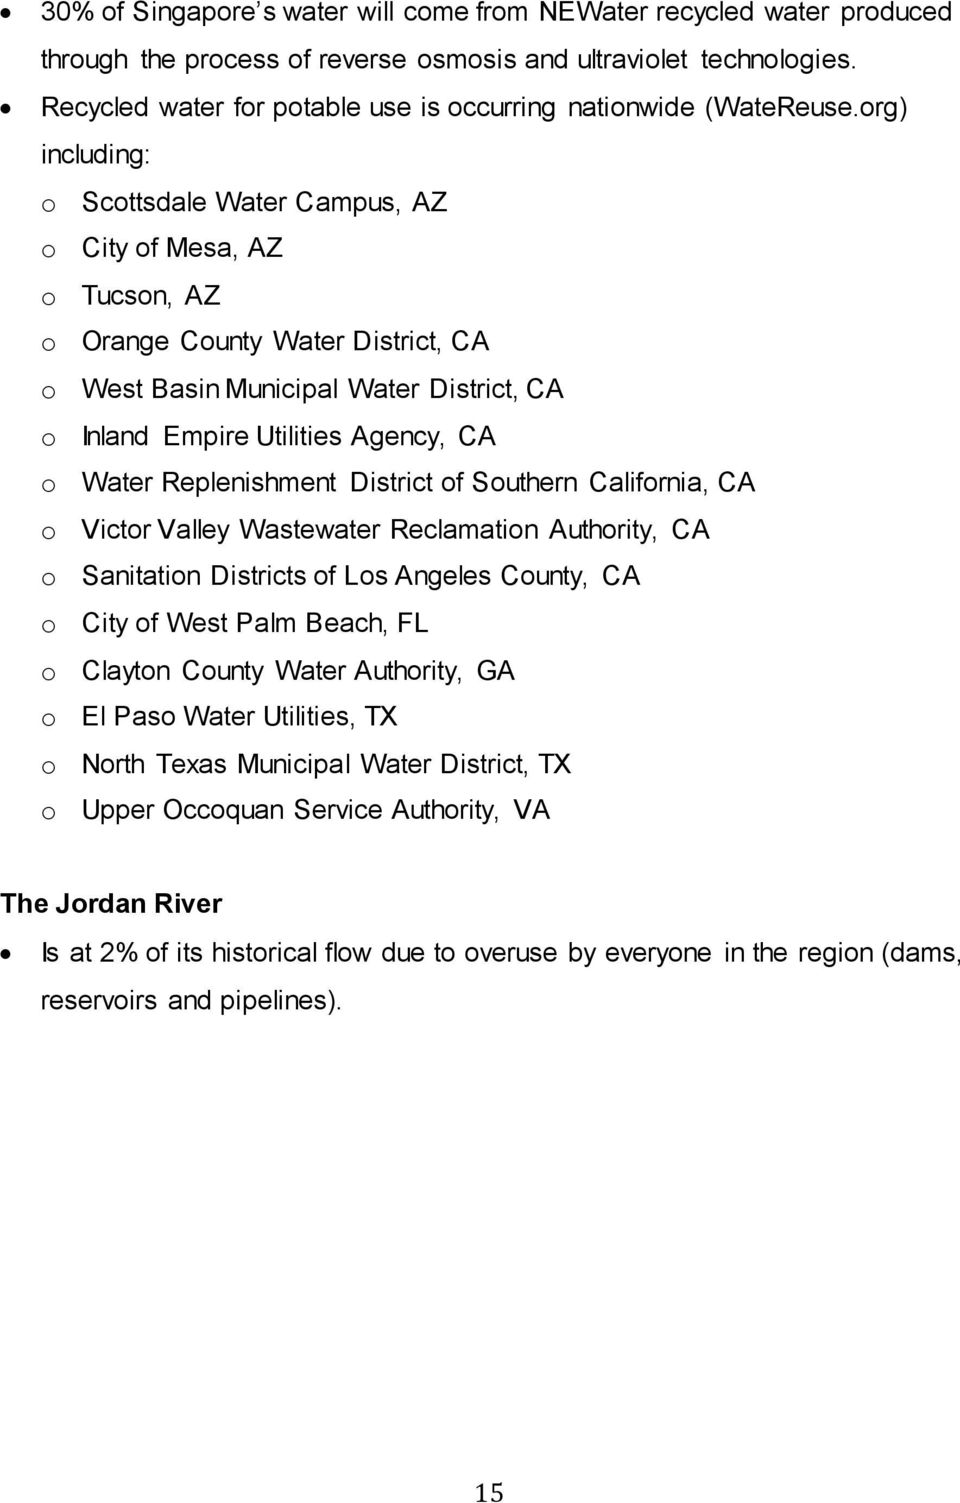 org) including: o Scottsdale Water Campus, AZ o City of Mesa, AZ o Tucson, AZ o Orange County Water District, CA o West Basin Municipal Water District, CA o Inland Empire Utilities Agency, CA o Water